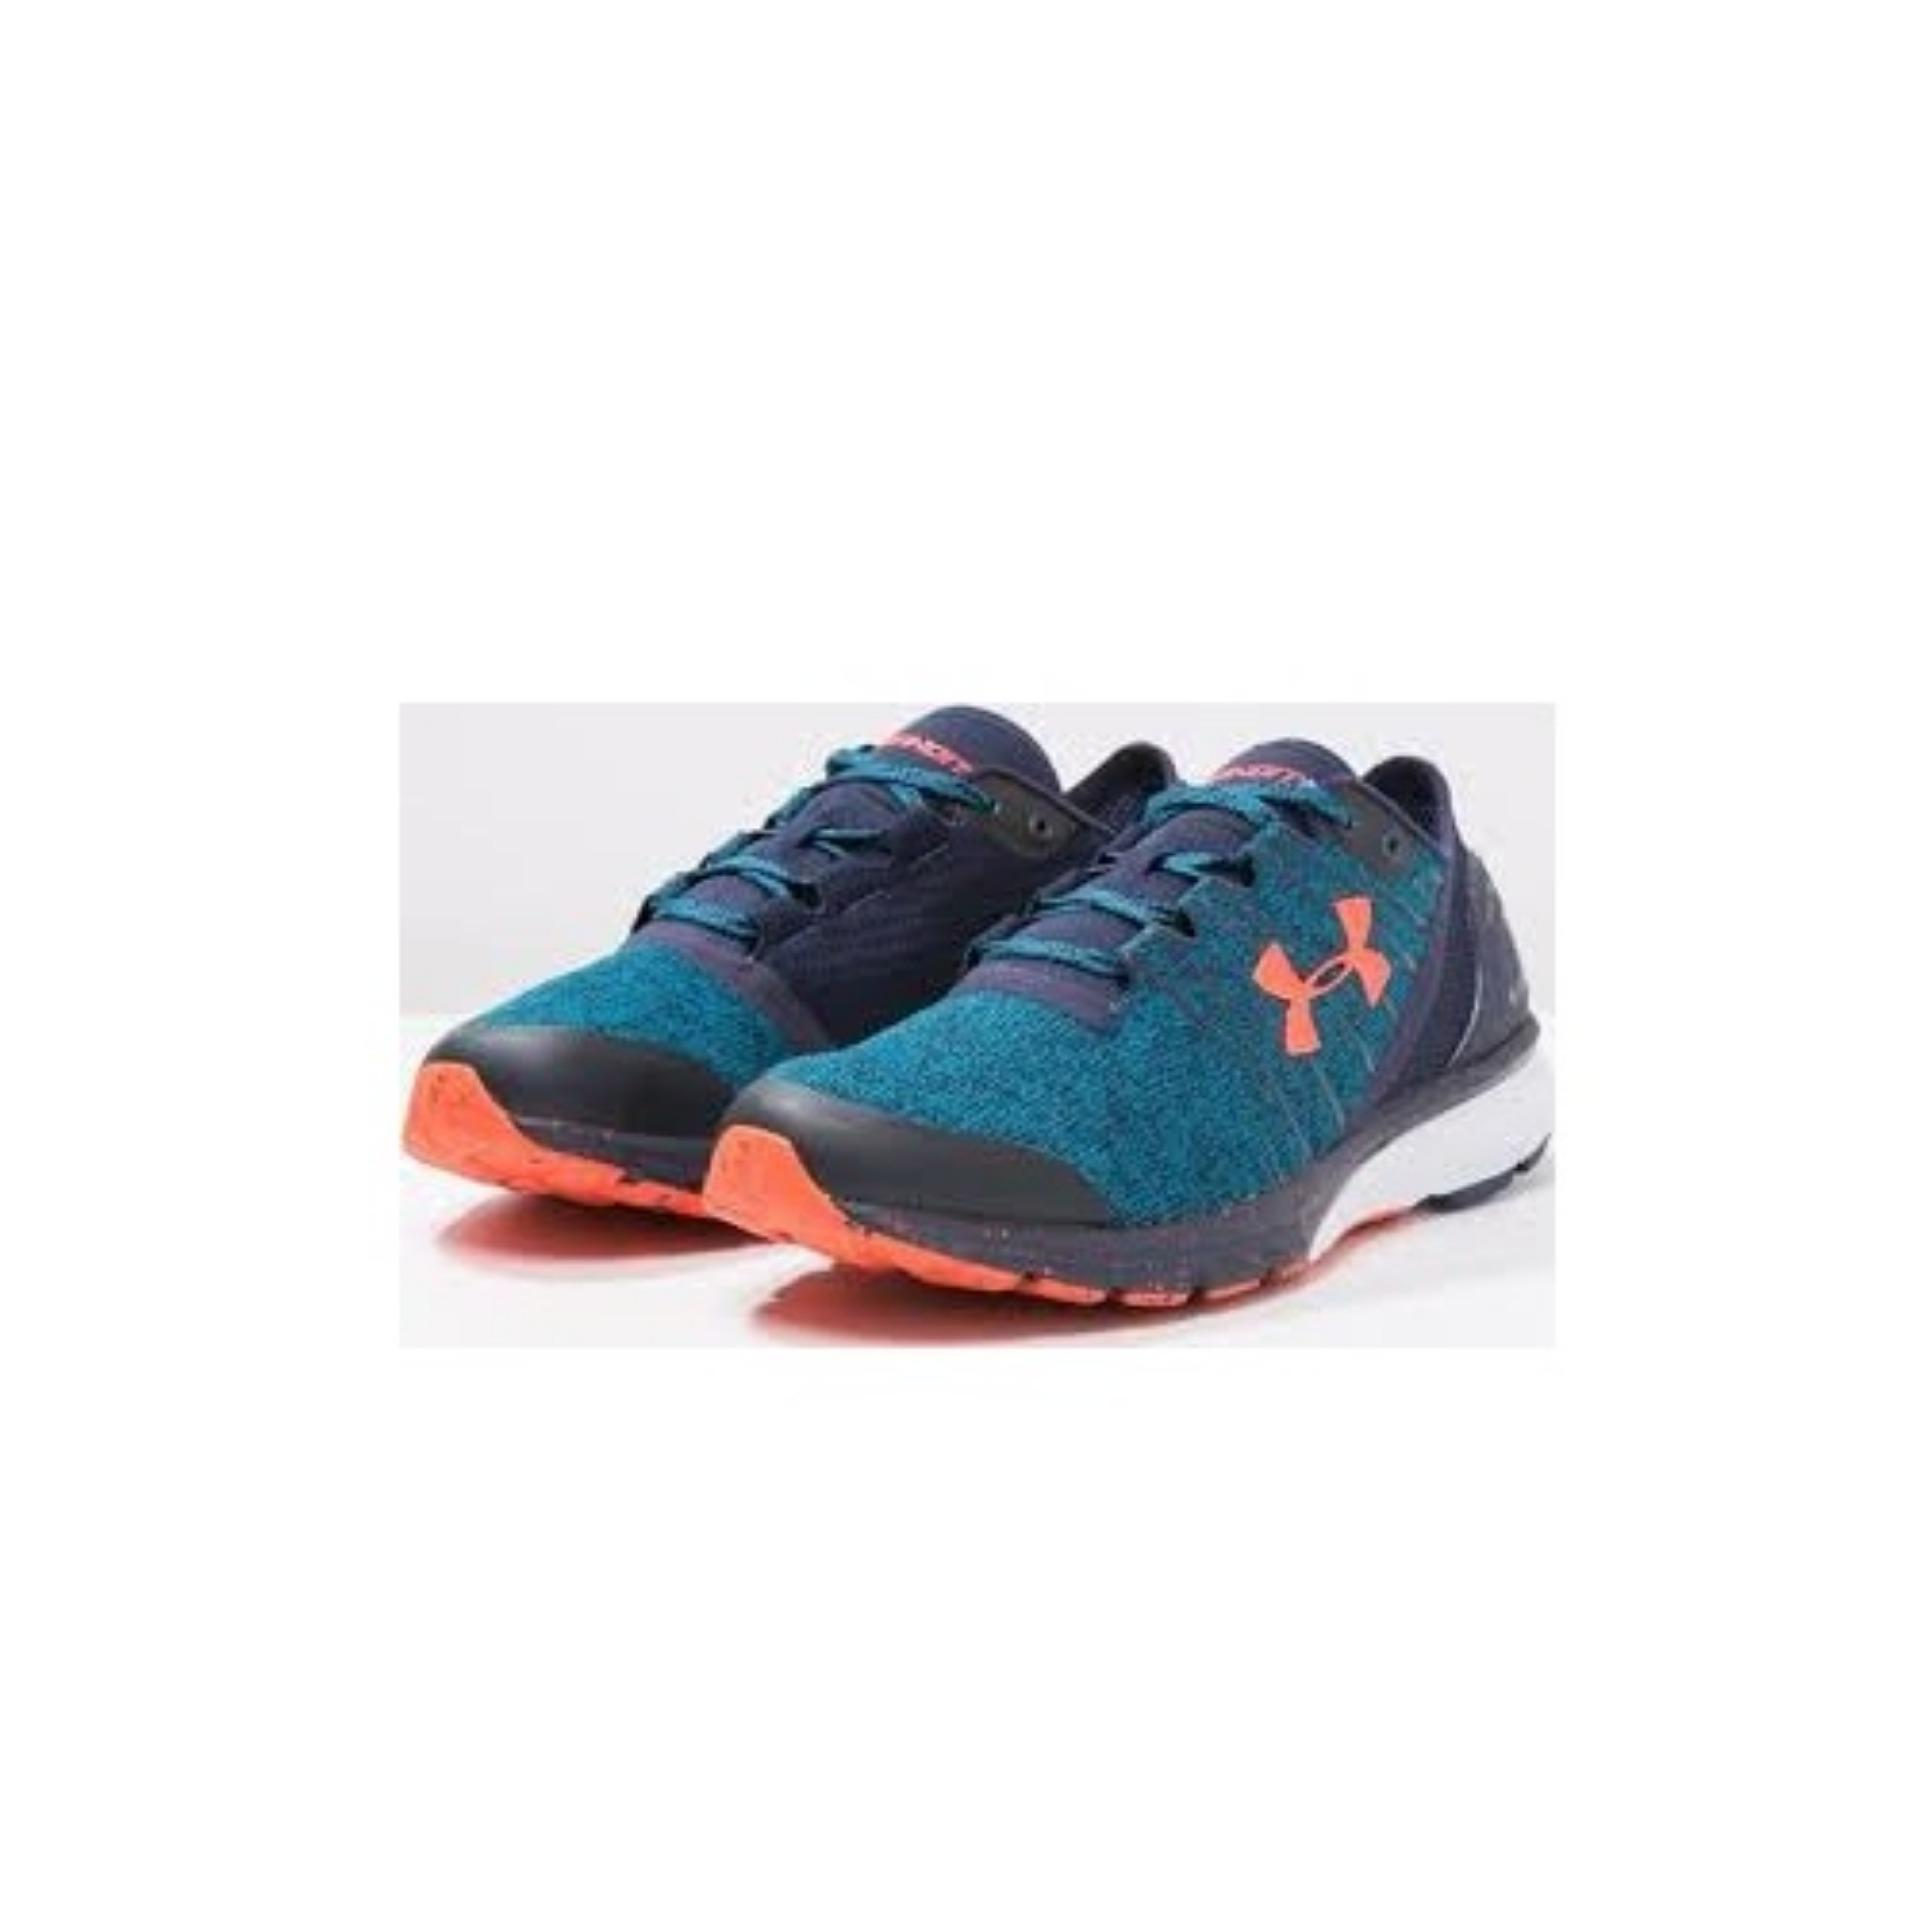 official photos fefc4 c0797 Philippines | Under Armour Men's Charged Bandit 2 Training ...